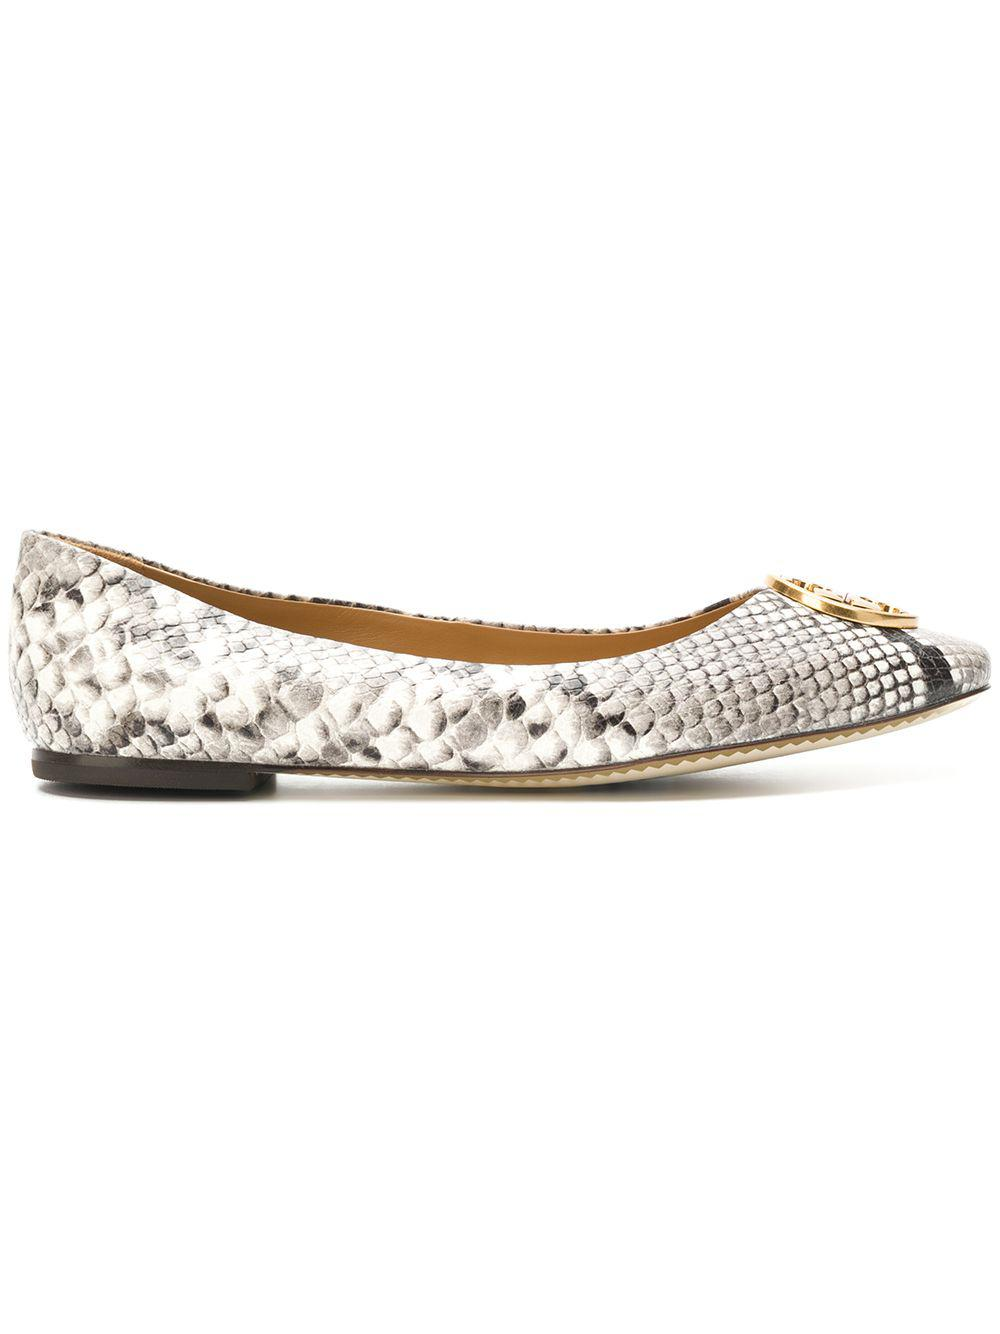 d41b6f1662bf Gallery. Previously sold at  Farfetch · Women s Jimmy Choo Alina Women s  Jeweled Flat Sandals ...